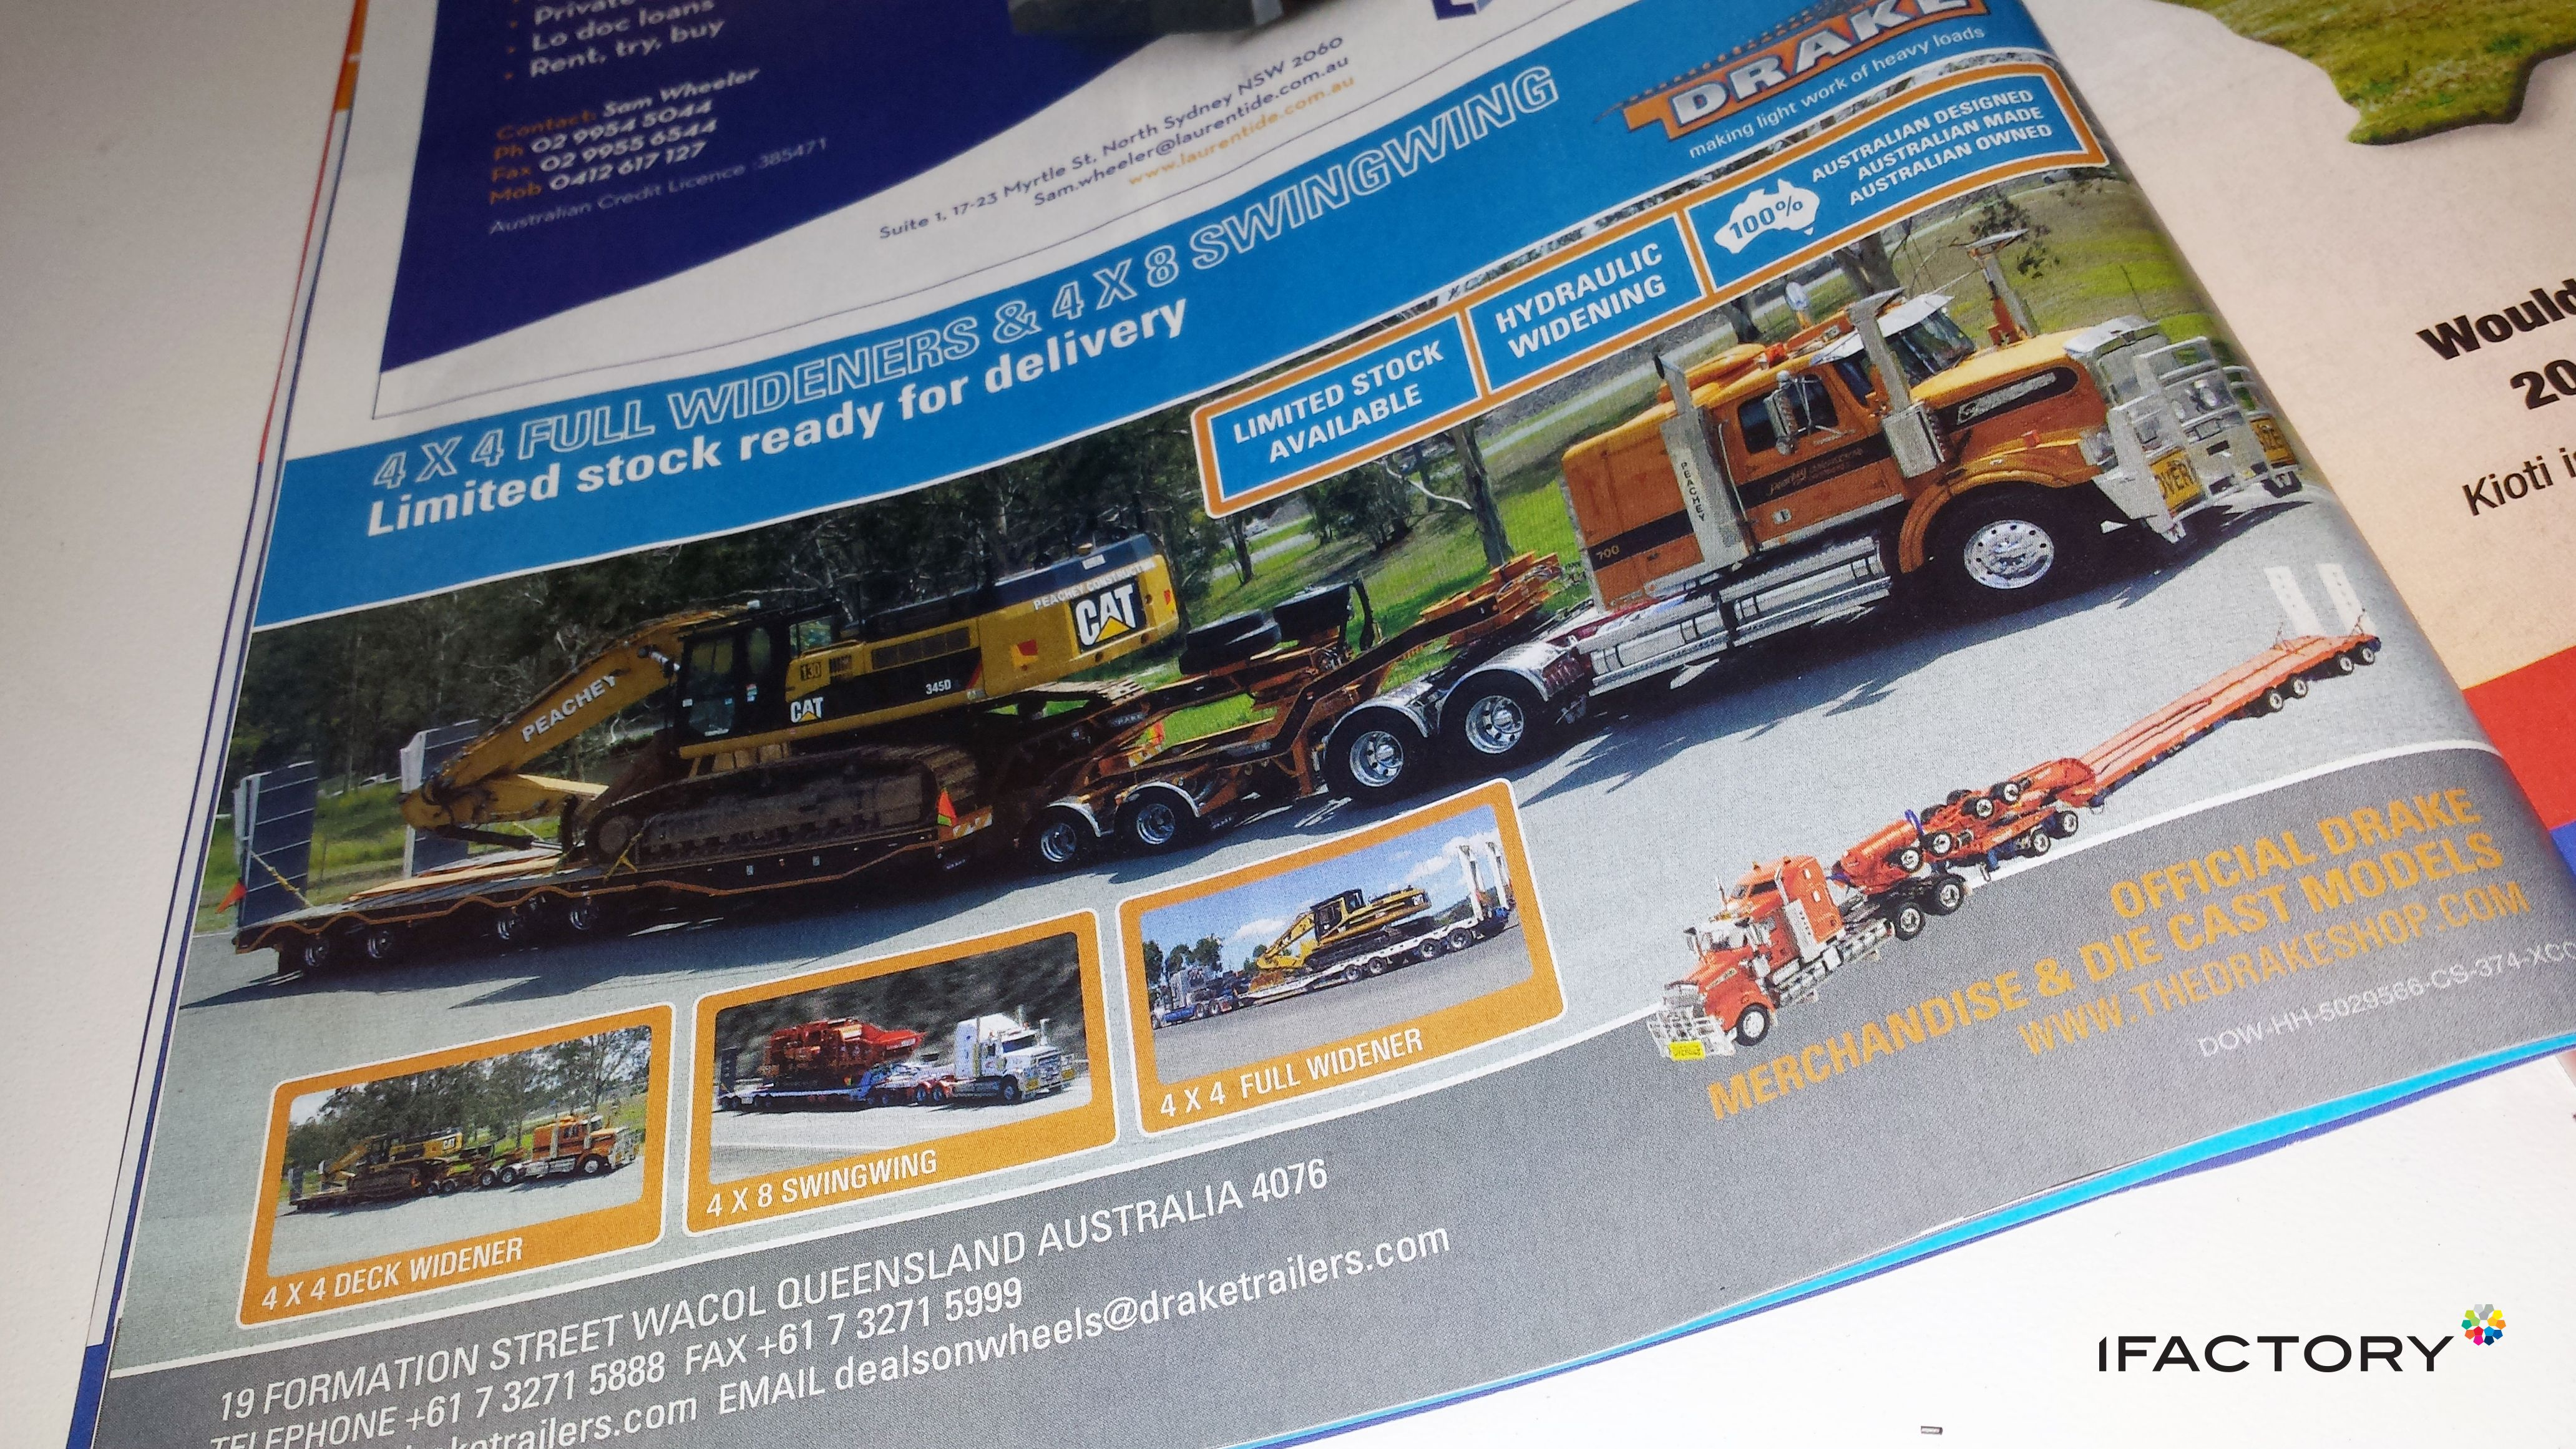 Drake Trailers Deals On Wheels Magazine Print Ad By Ifactory